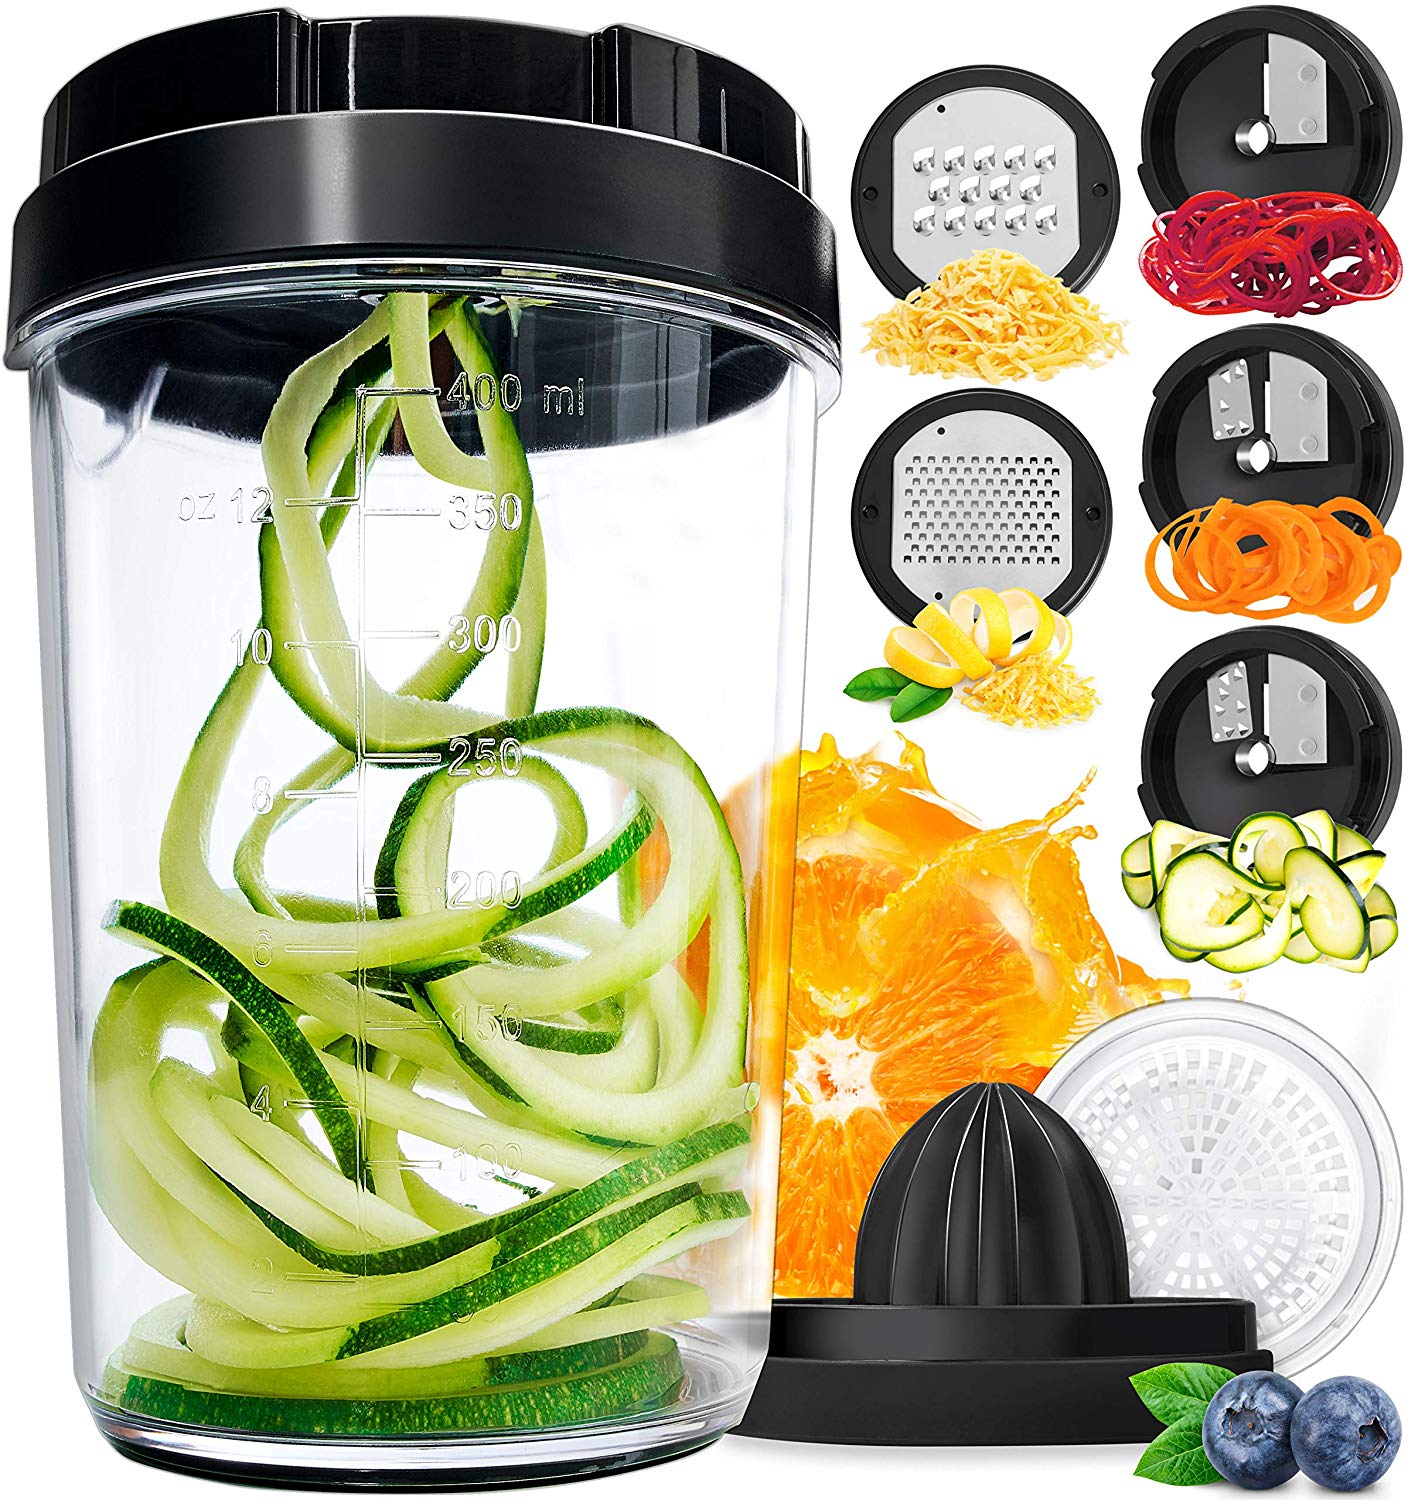 Vegetable Spiralizer Vegetable Slicer fullstar